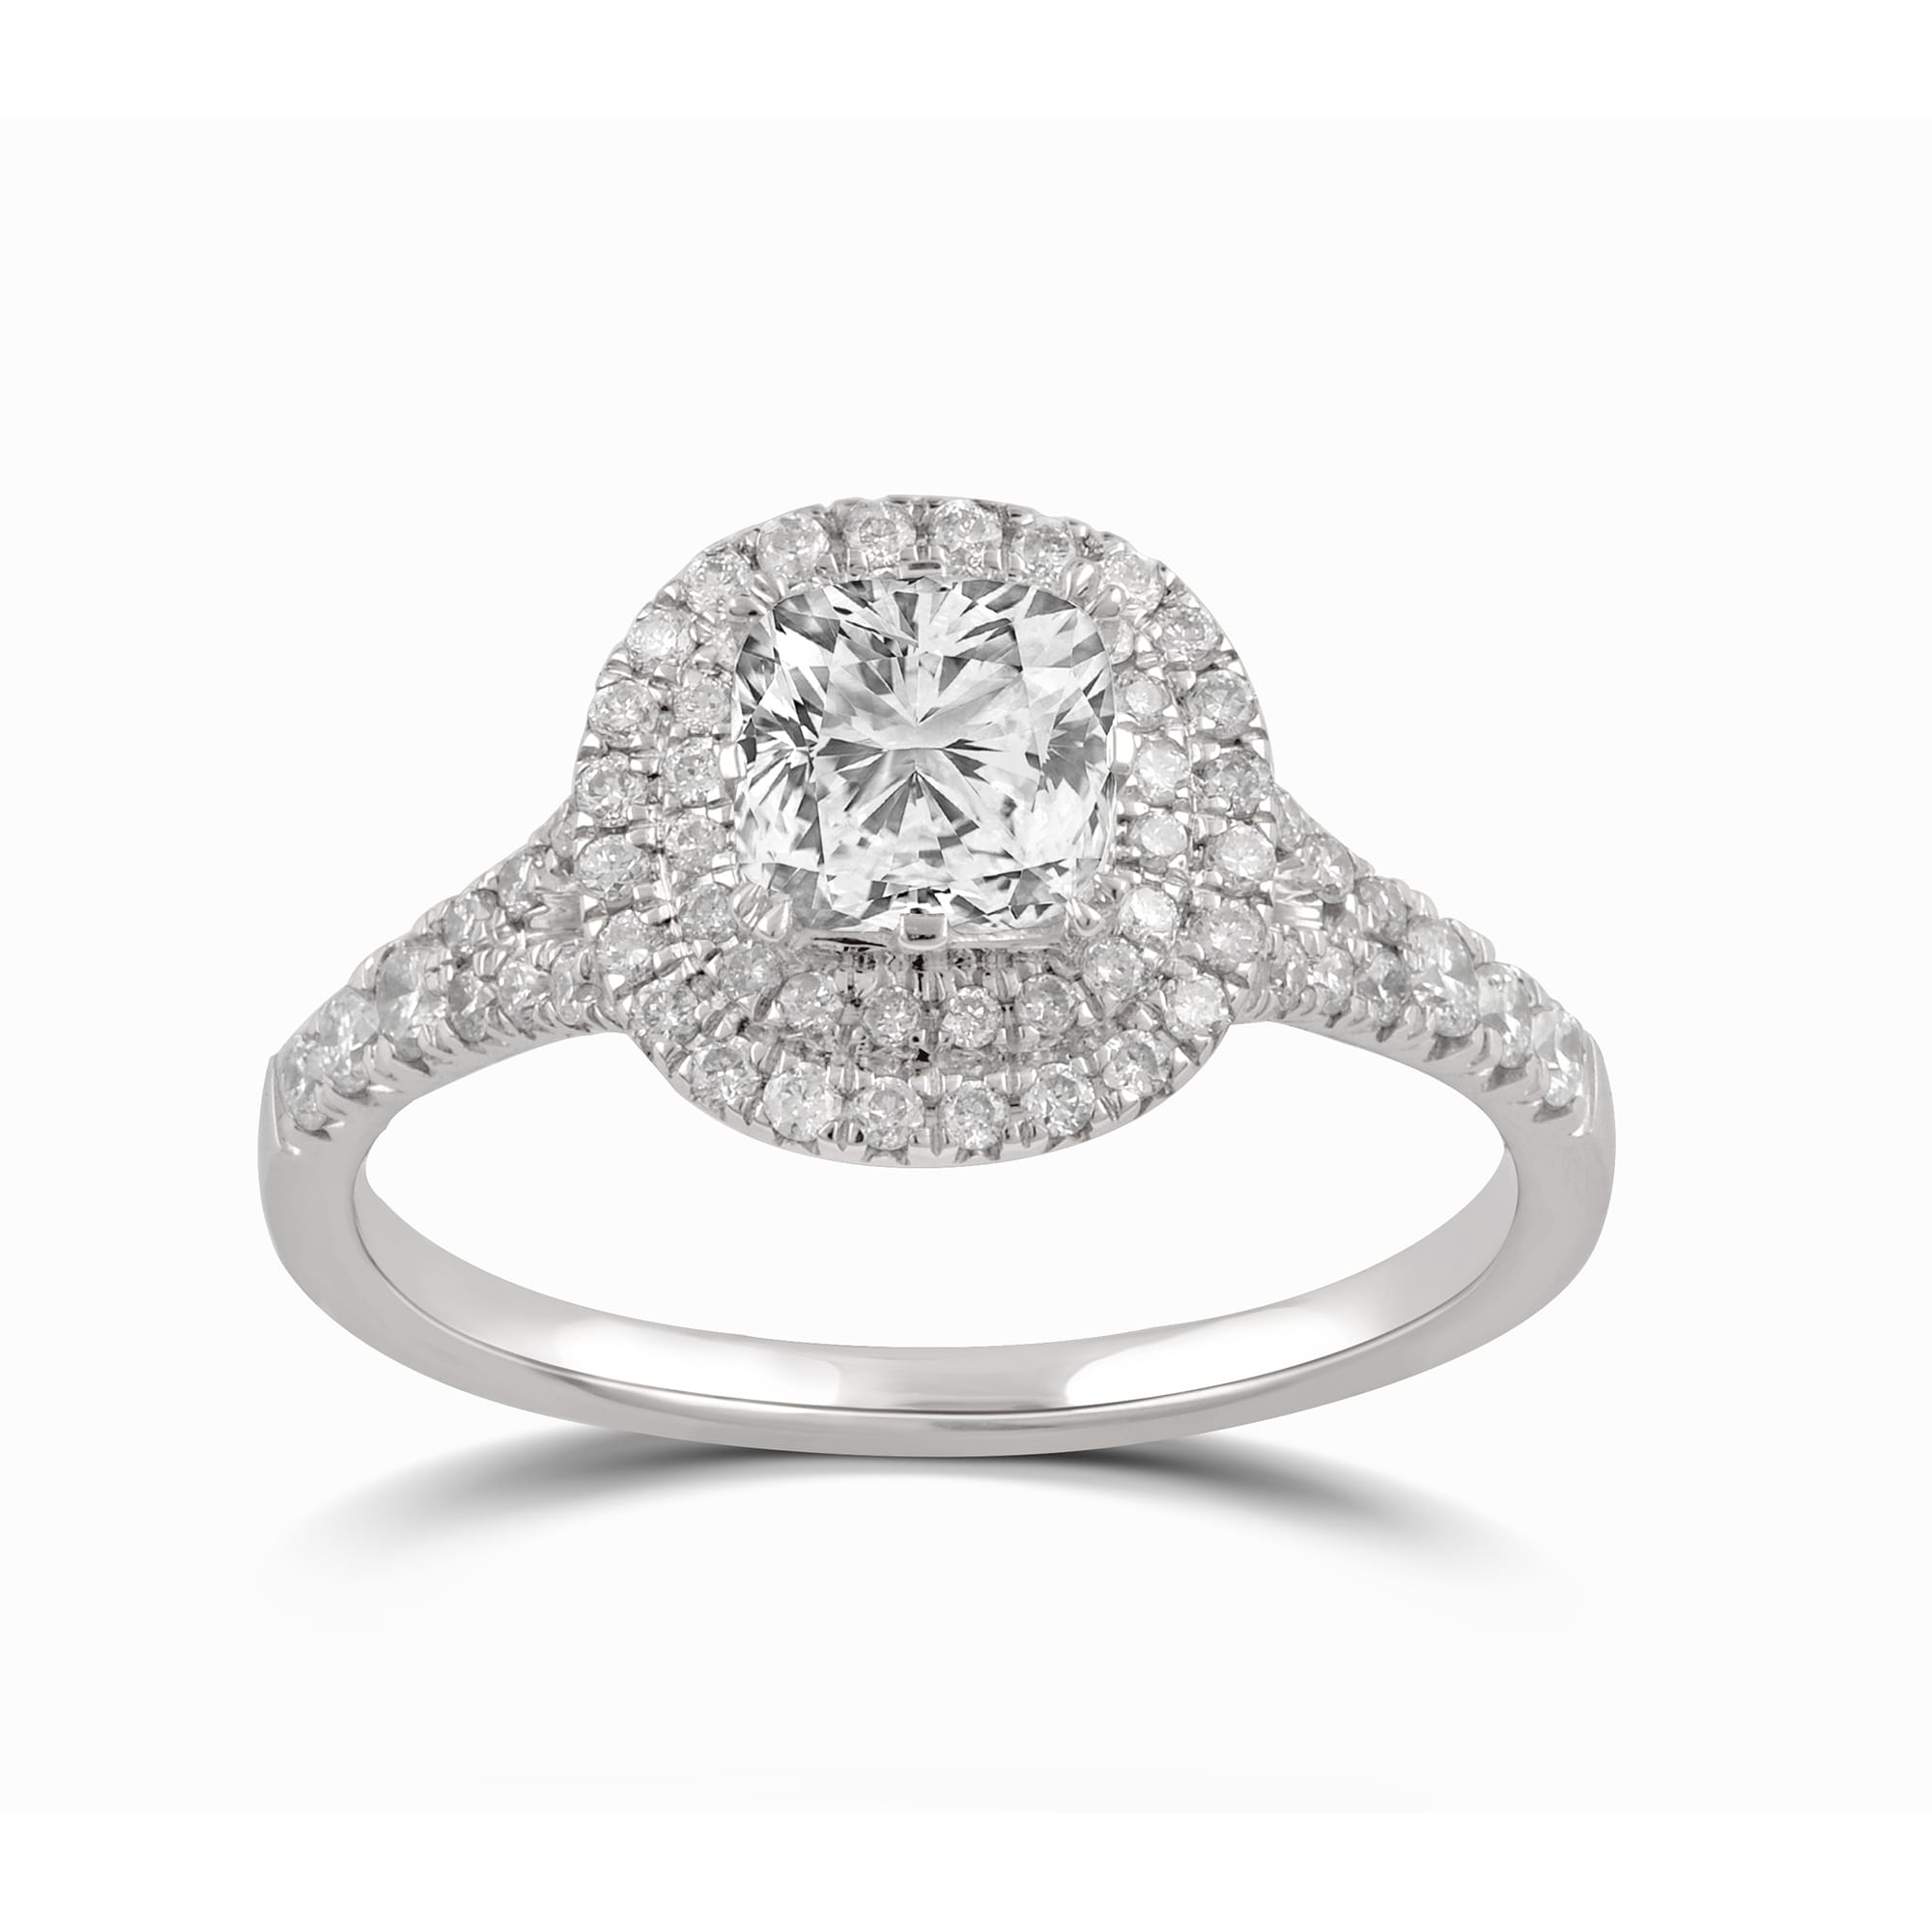 Shop Divina Sterling Silver Cushion Cut Swarovski Double Halo Engagement Ring On Sale Overstock 28753524